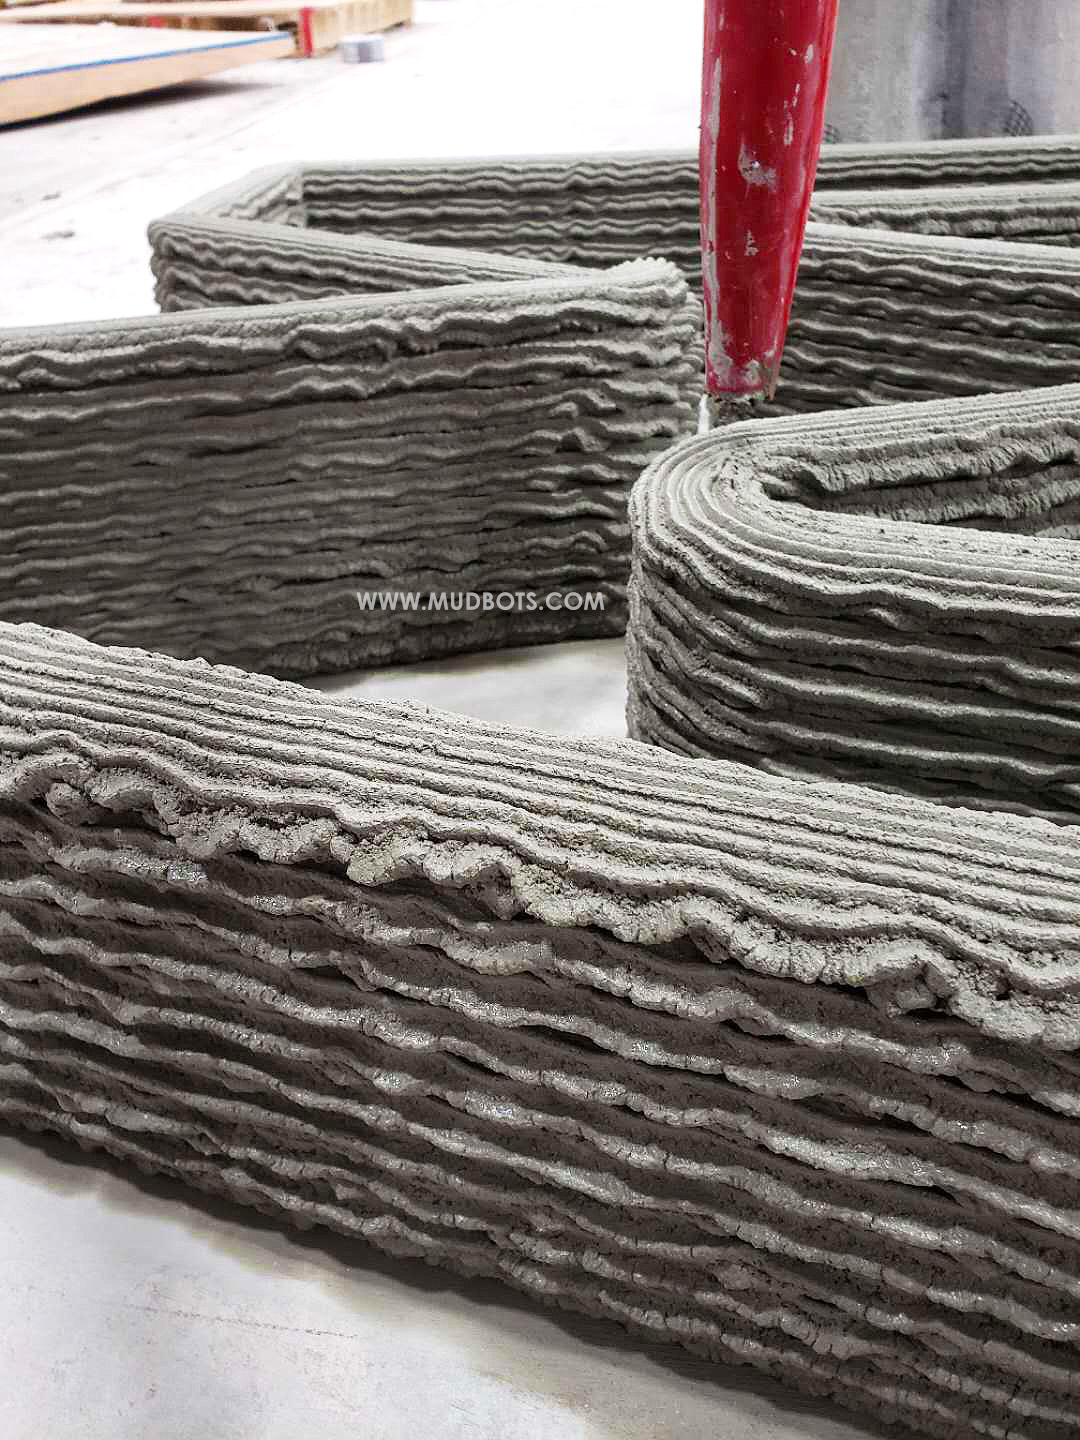 Design homes with innovative design like wavy, zigzag walls. Build it using 3D Concrete House Printer and finish it in a third of a time it takes using traditional construction methods.